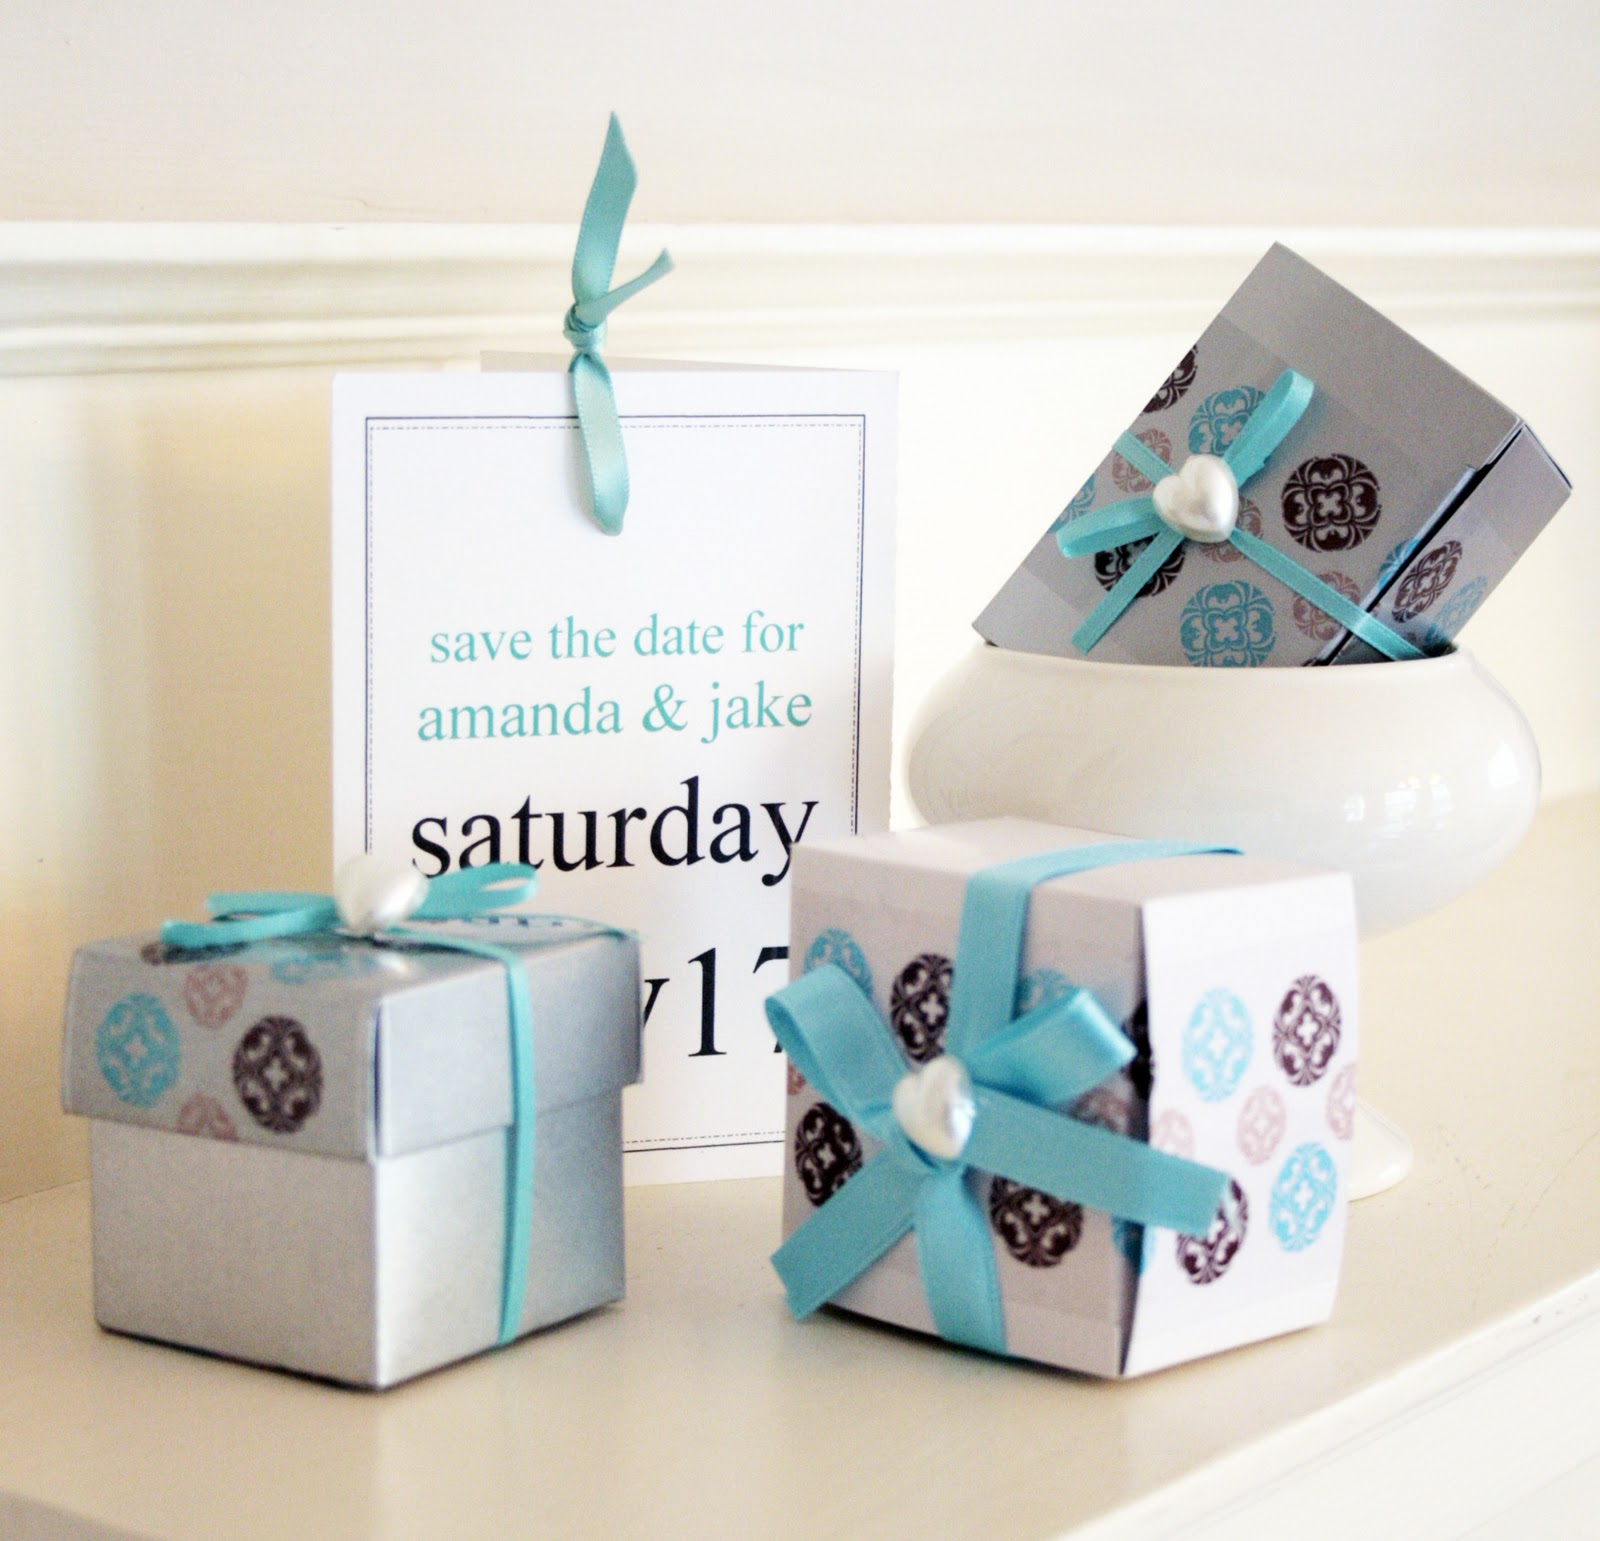 Modern wedding invitations are